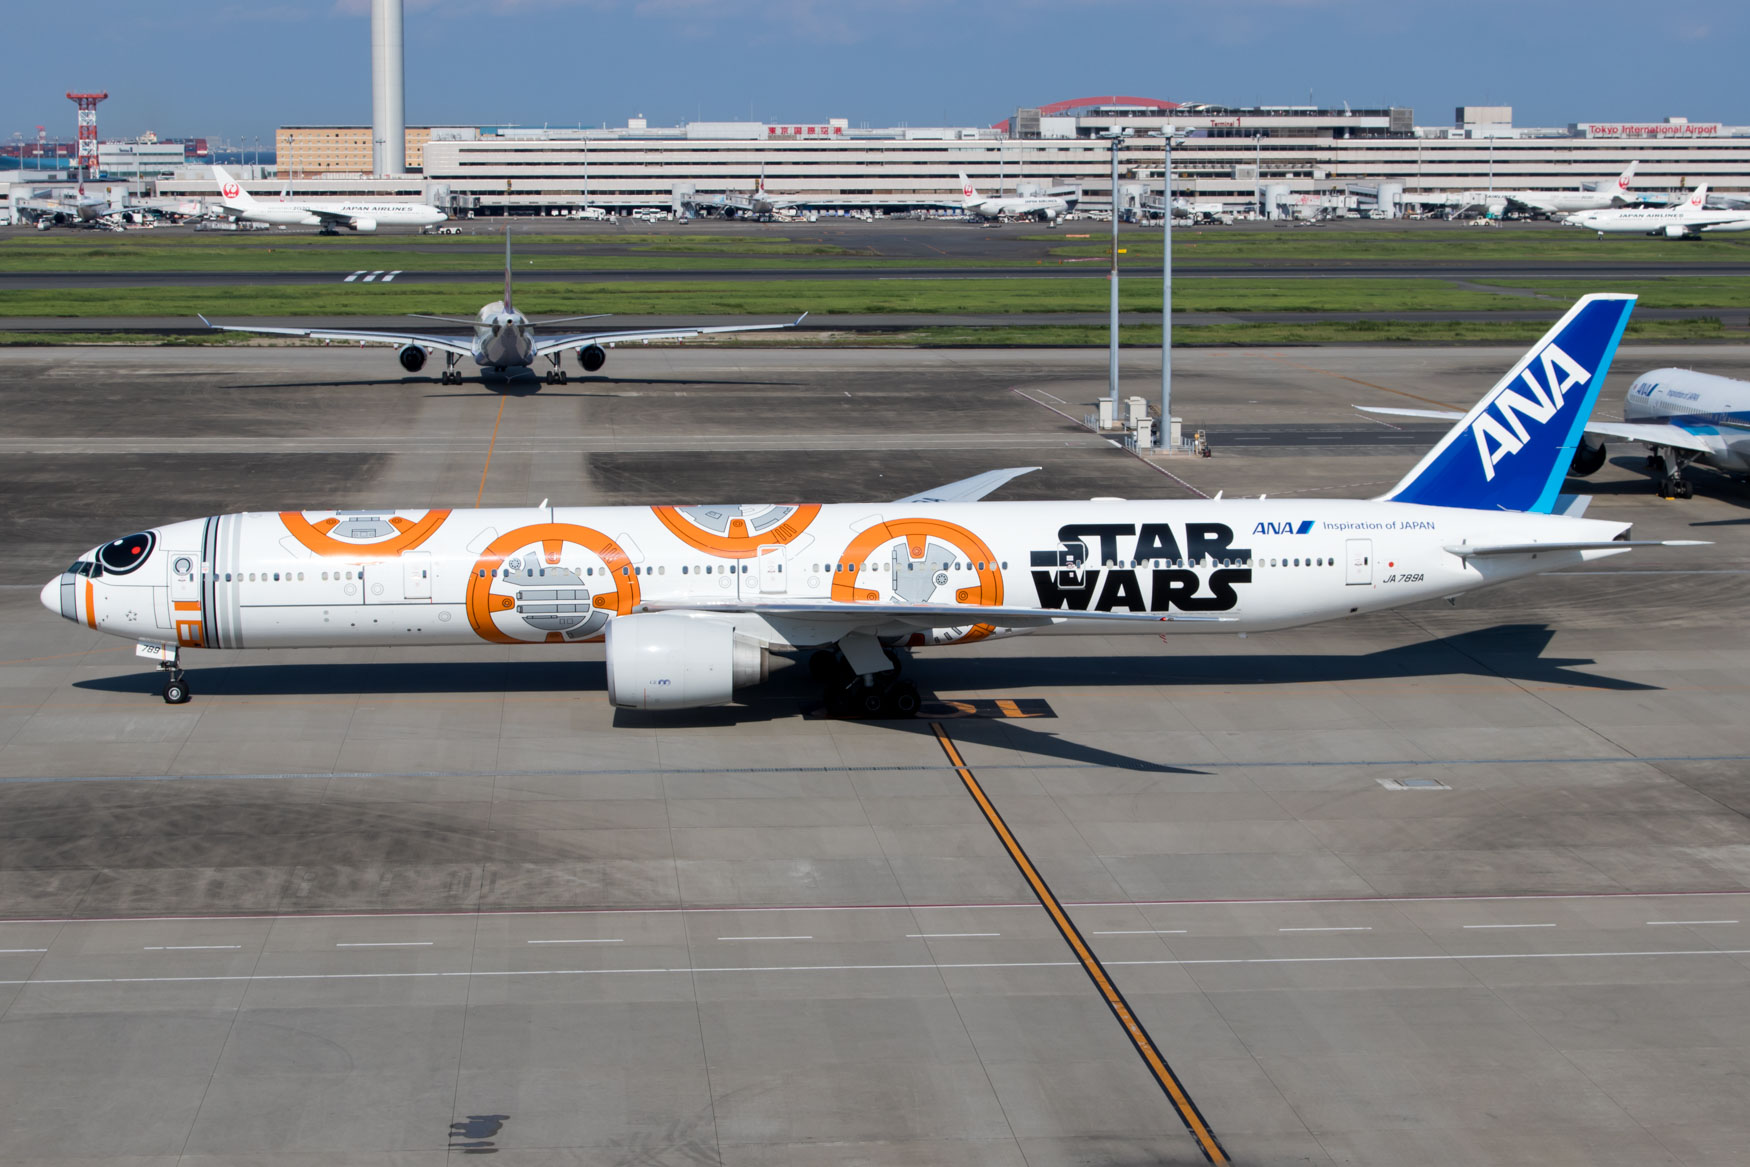 ANA Star Wars BB-8 Jet